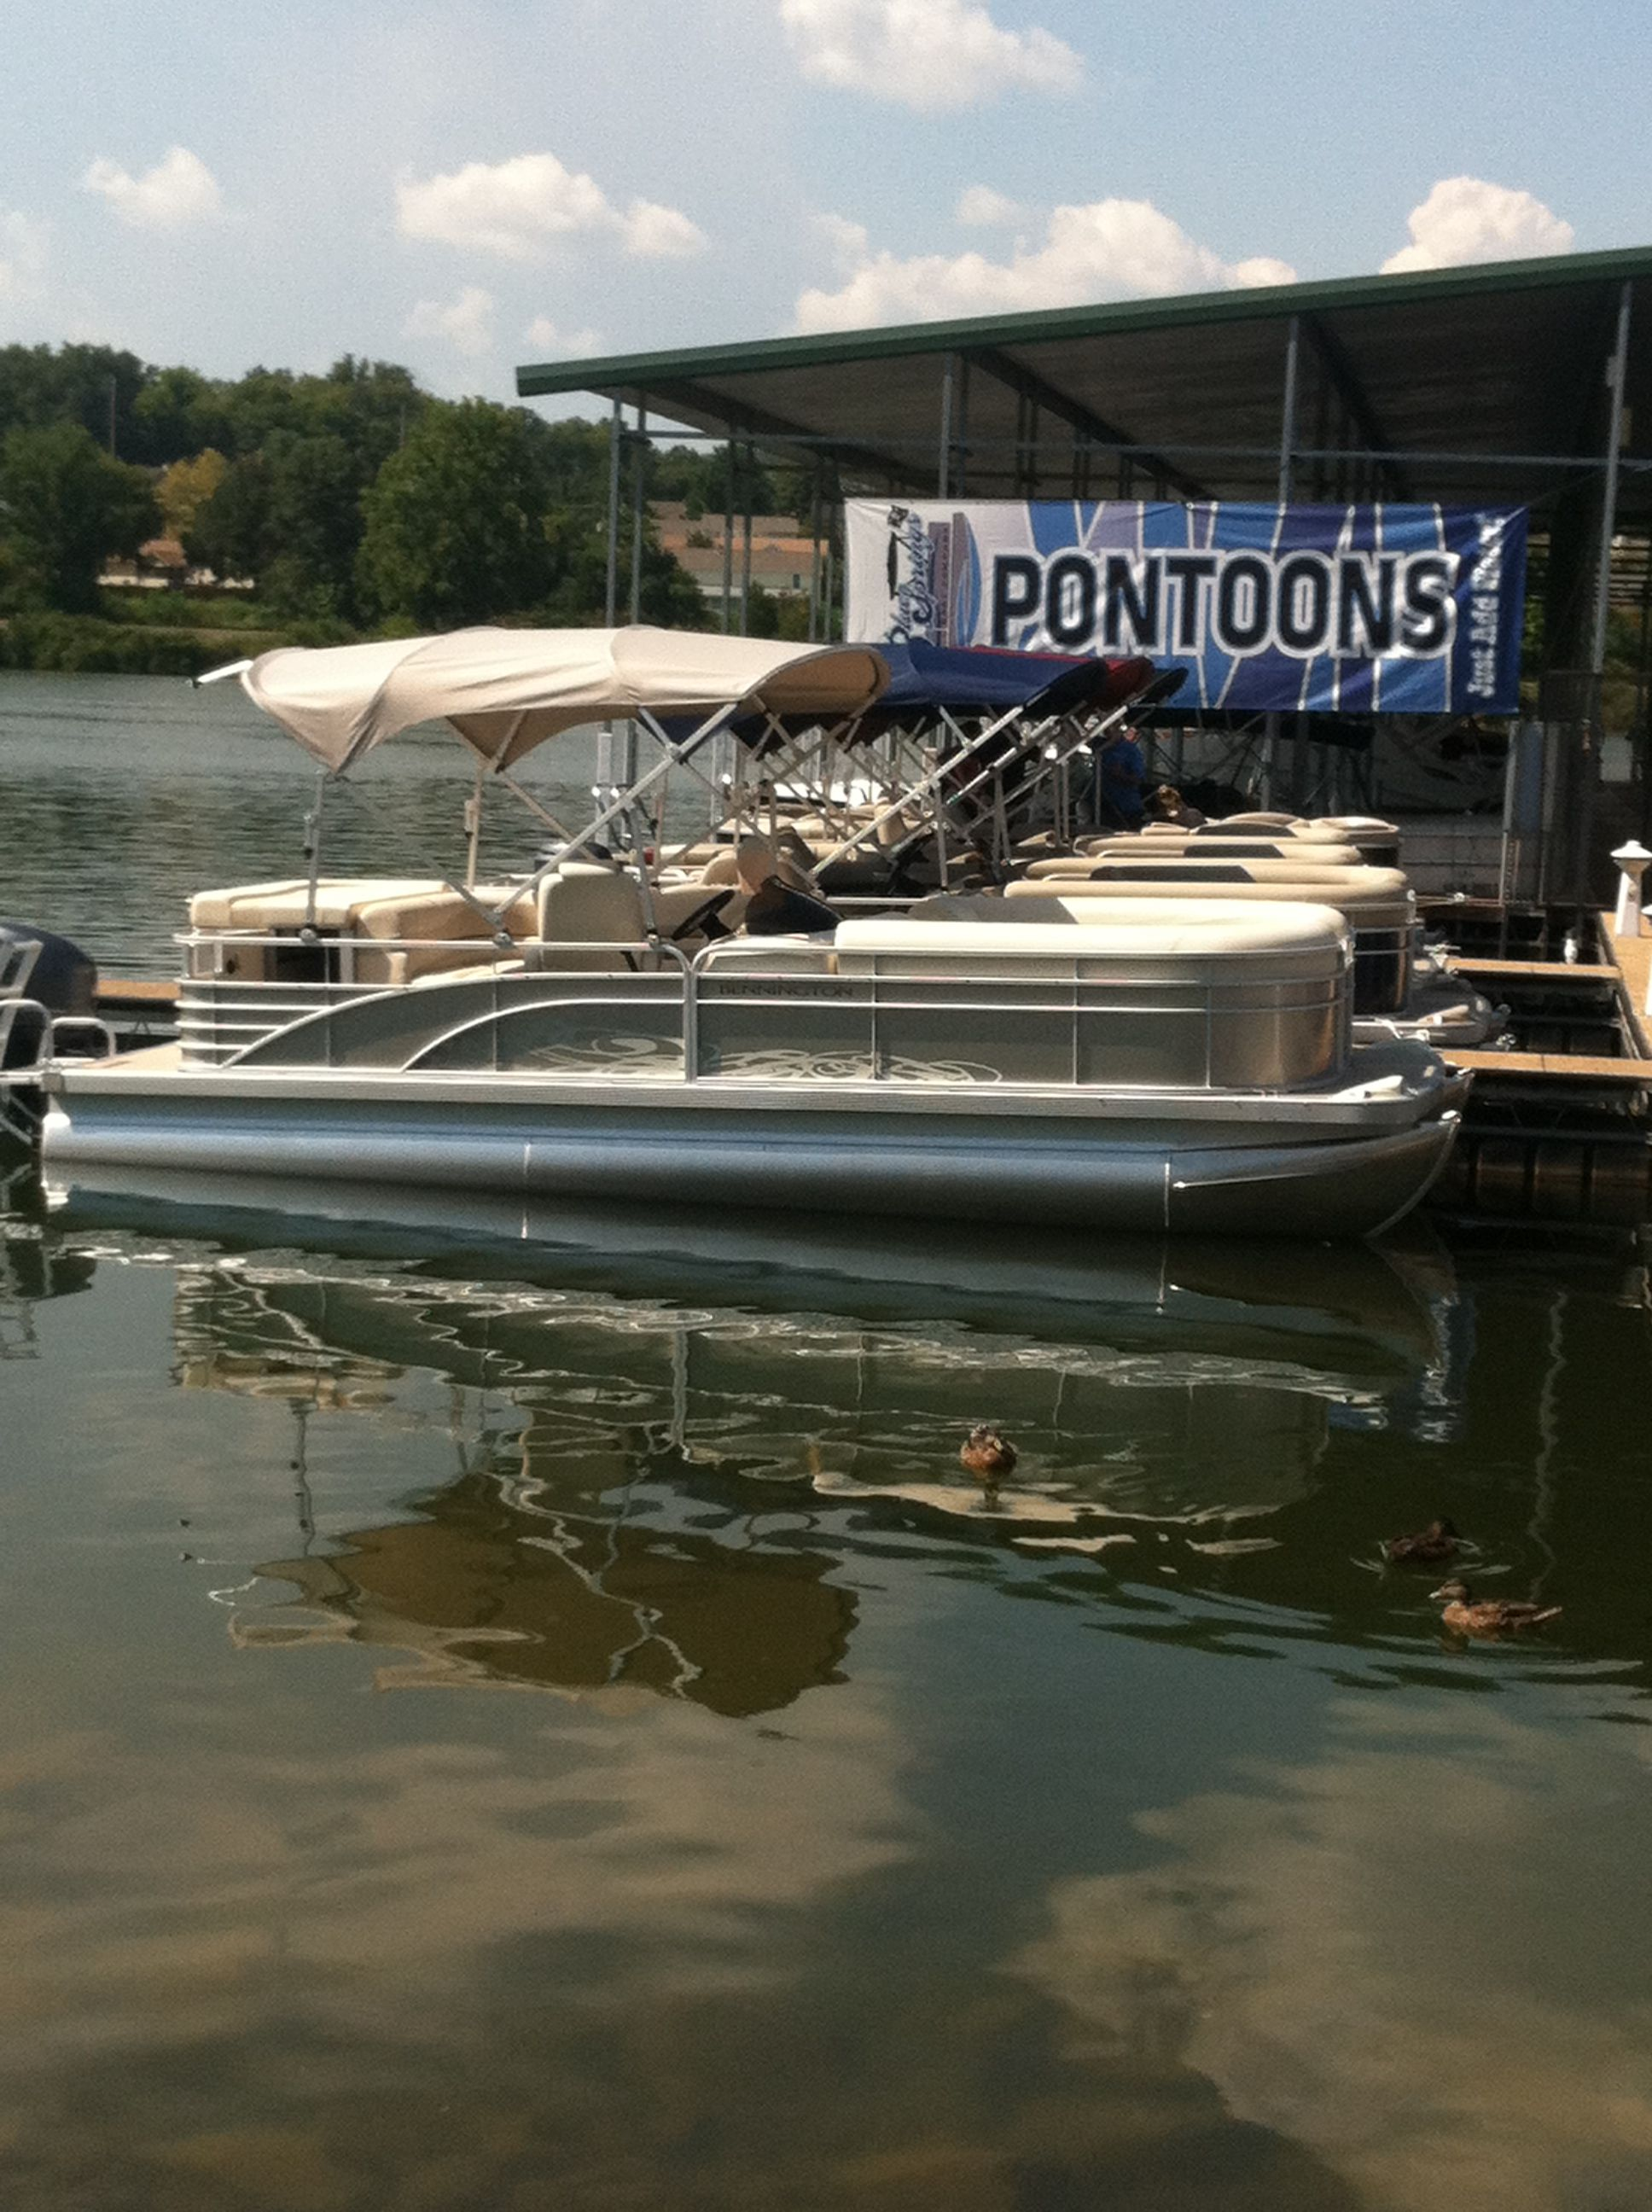 On the water boat show water boat pontoon boat pontoon